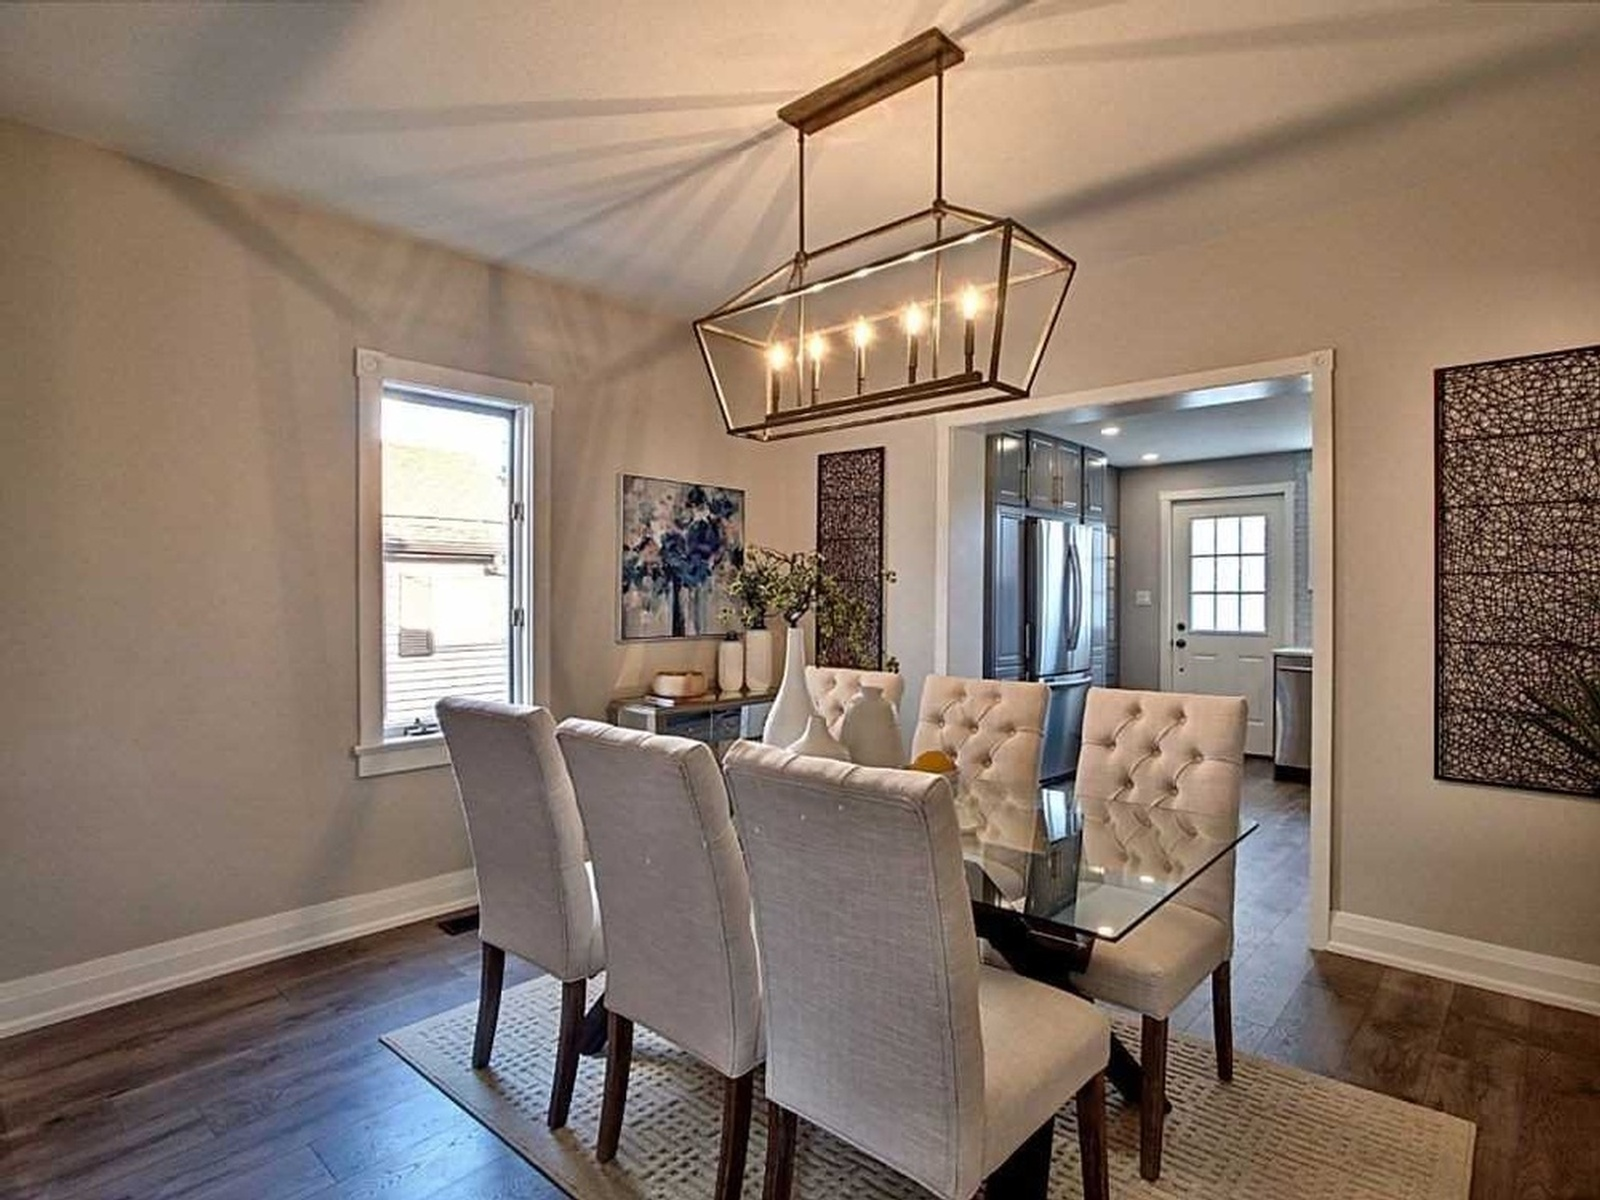 Lit Dining Room - Home Staging Consultation Services Oshawa by Impressive Staging